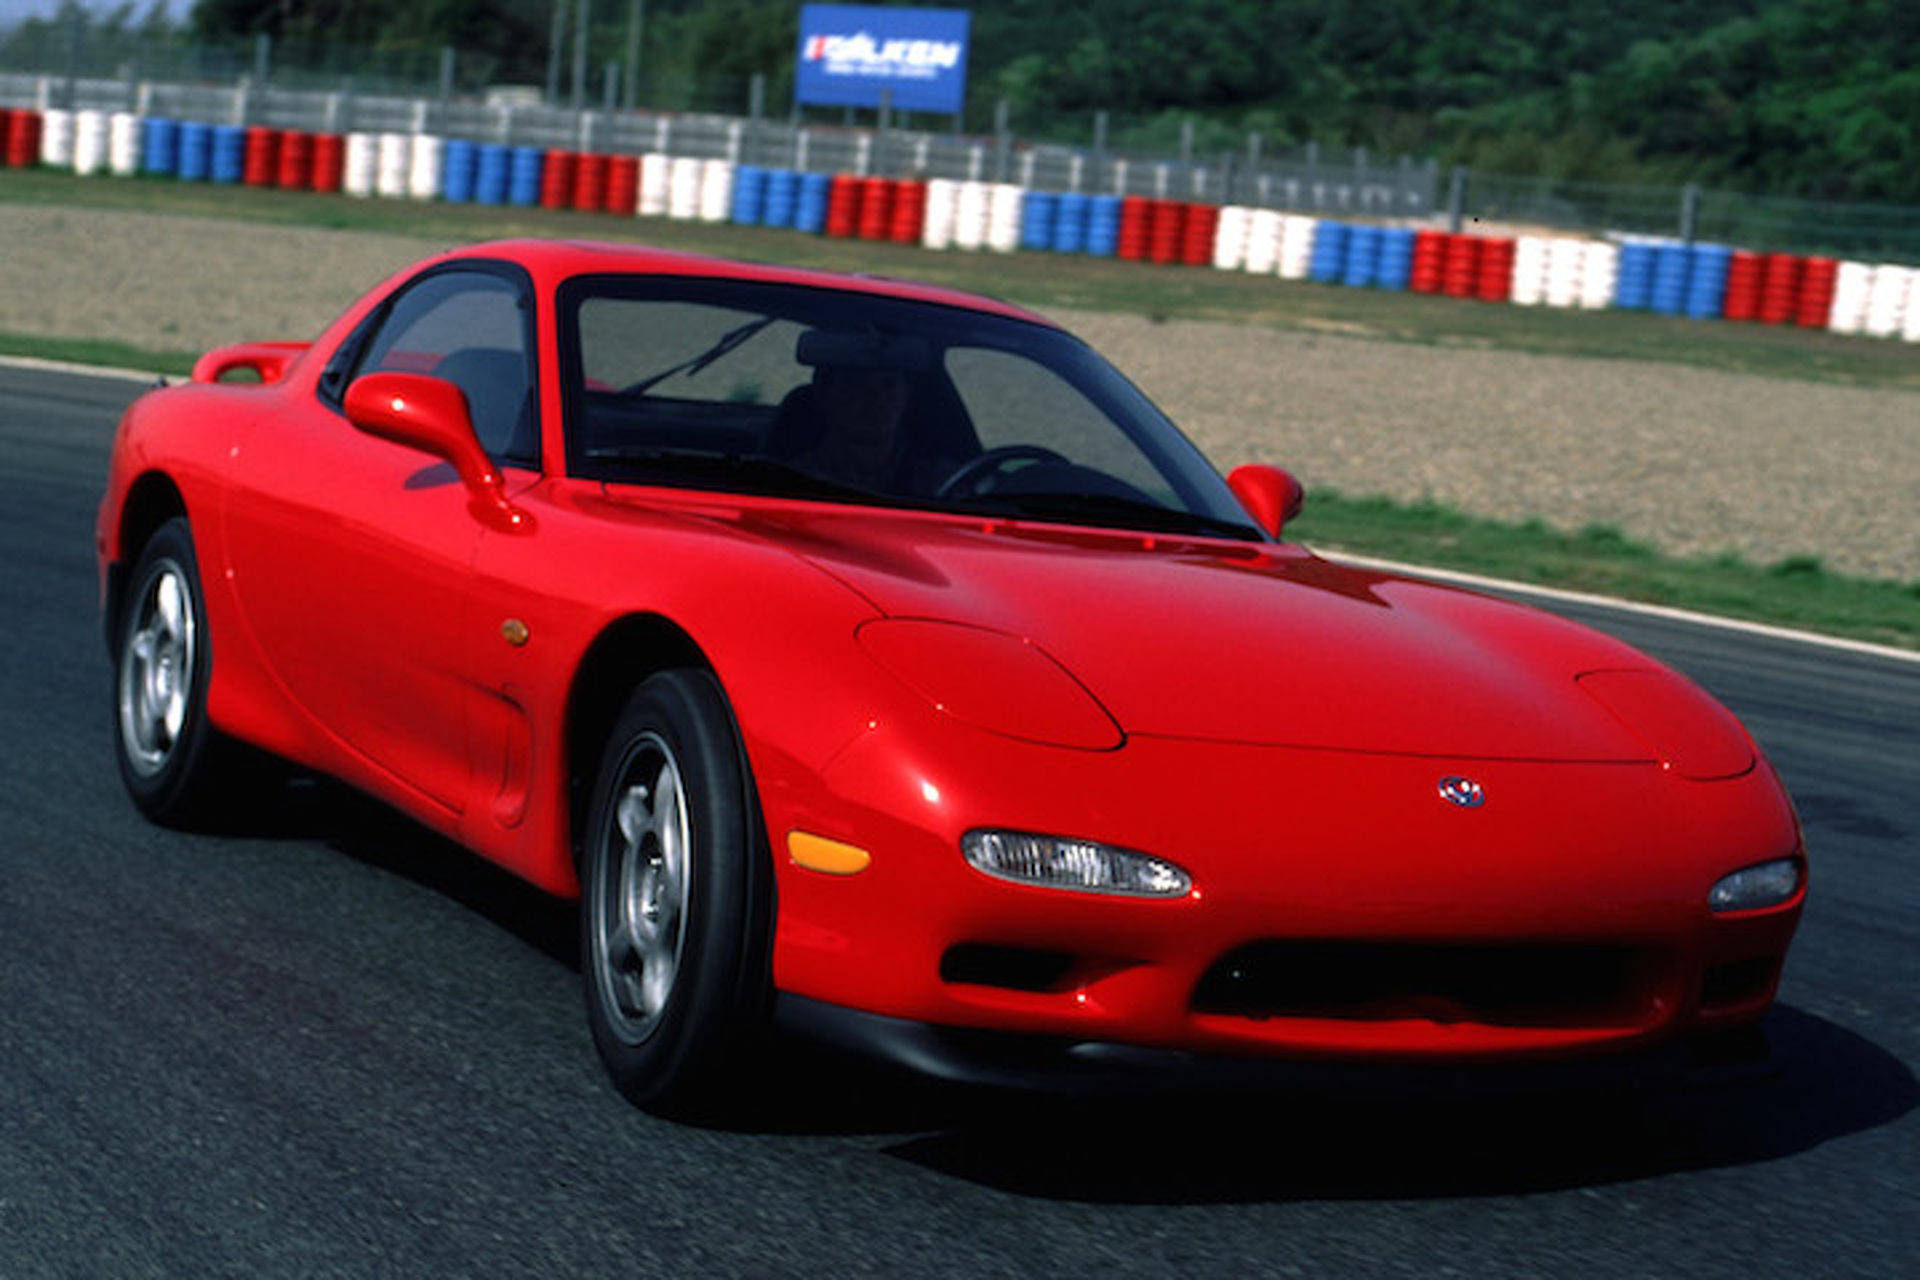 Mazda Hasn't Given Up on the Rotary Engine Just Yet